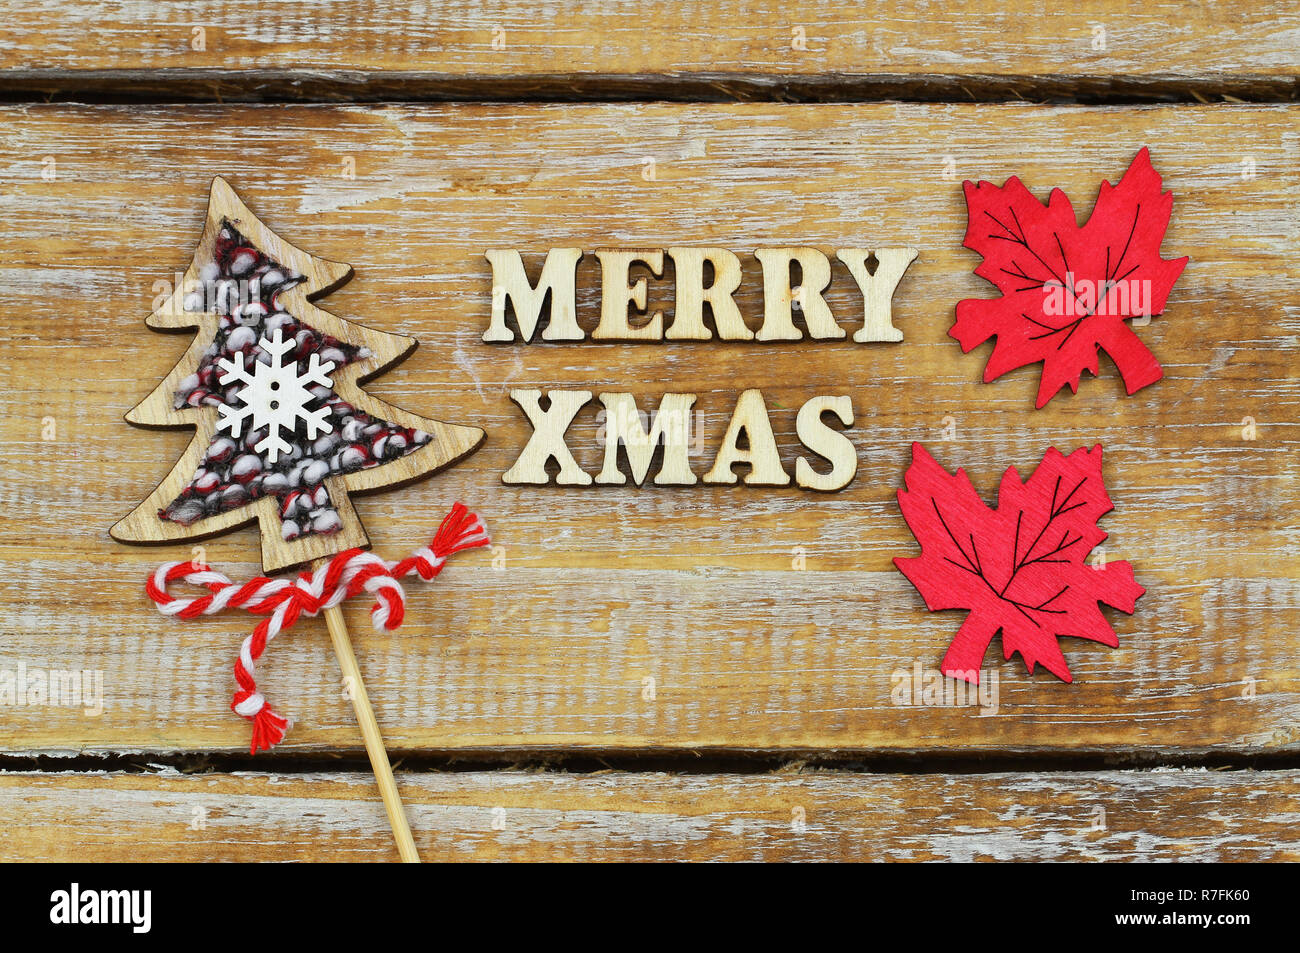 Merry Christmas Written With Wooden Letters With Wooden Christmas Tree And Painted Wooden Leaves Stock Photo Alamy